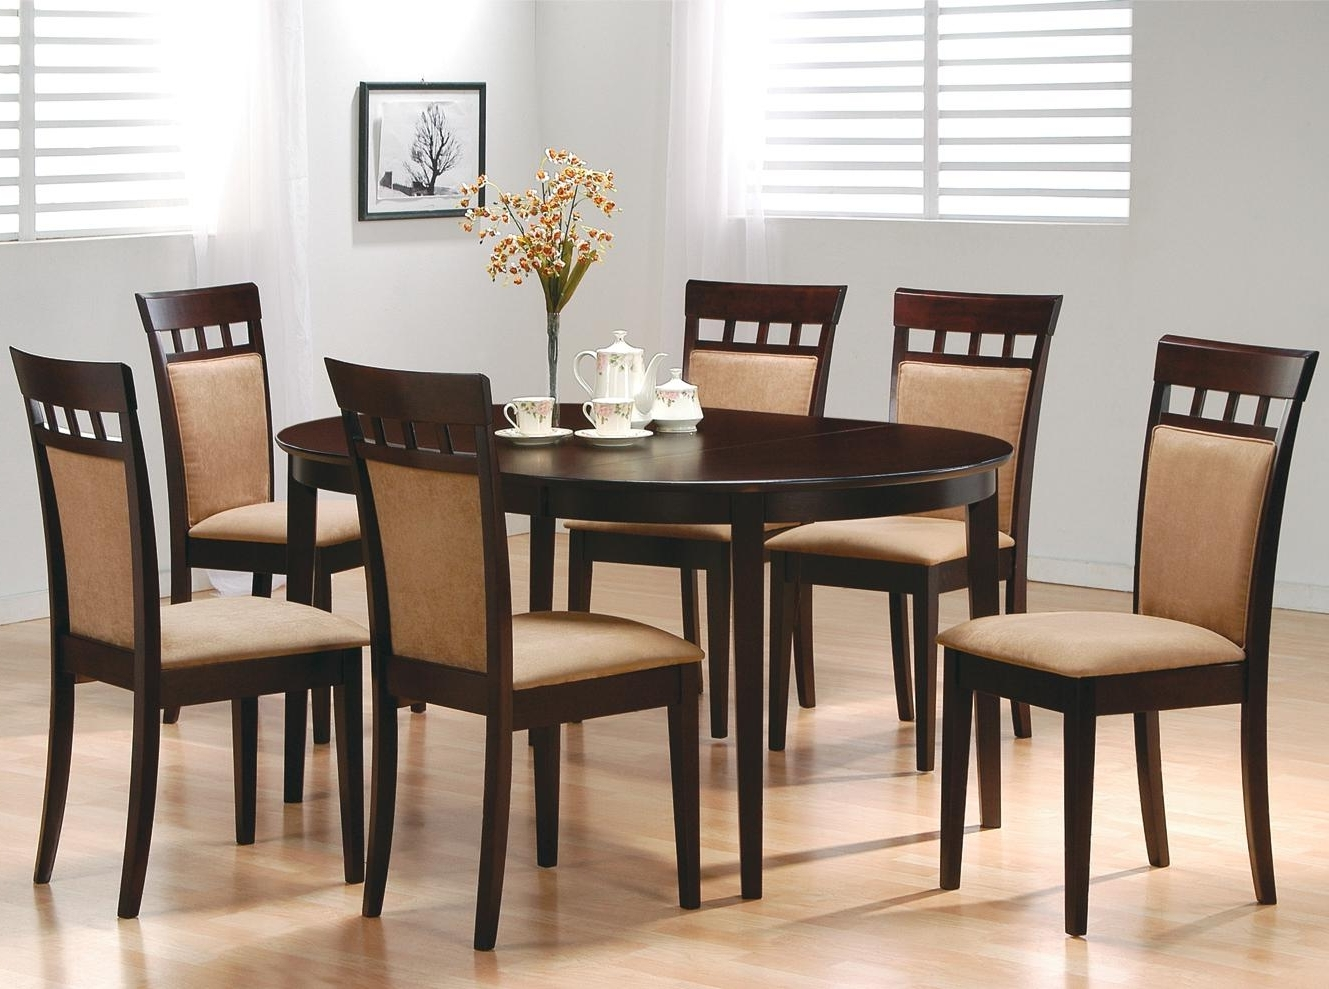 6 Seat Dining Tables Throughout Current Coaster Mix & Match 7 Piece Dining Set (Gallery 5 of 25)